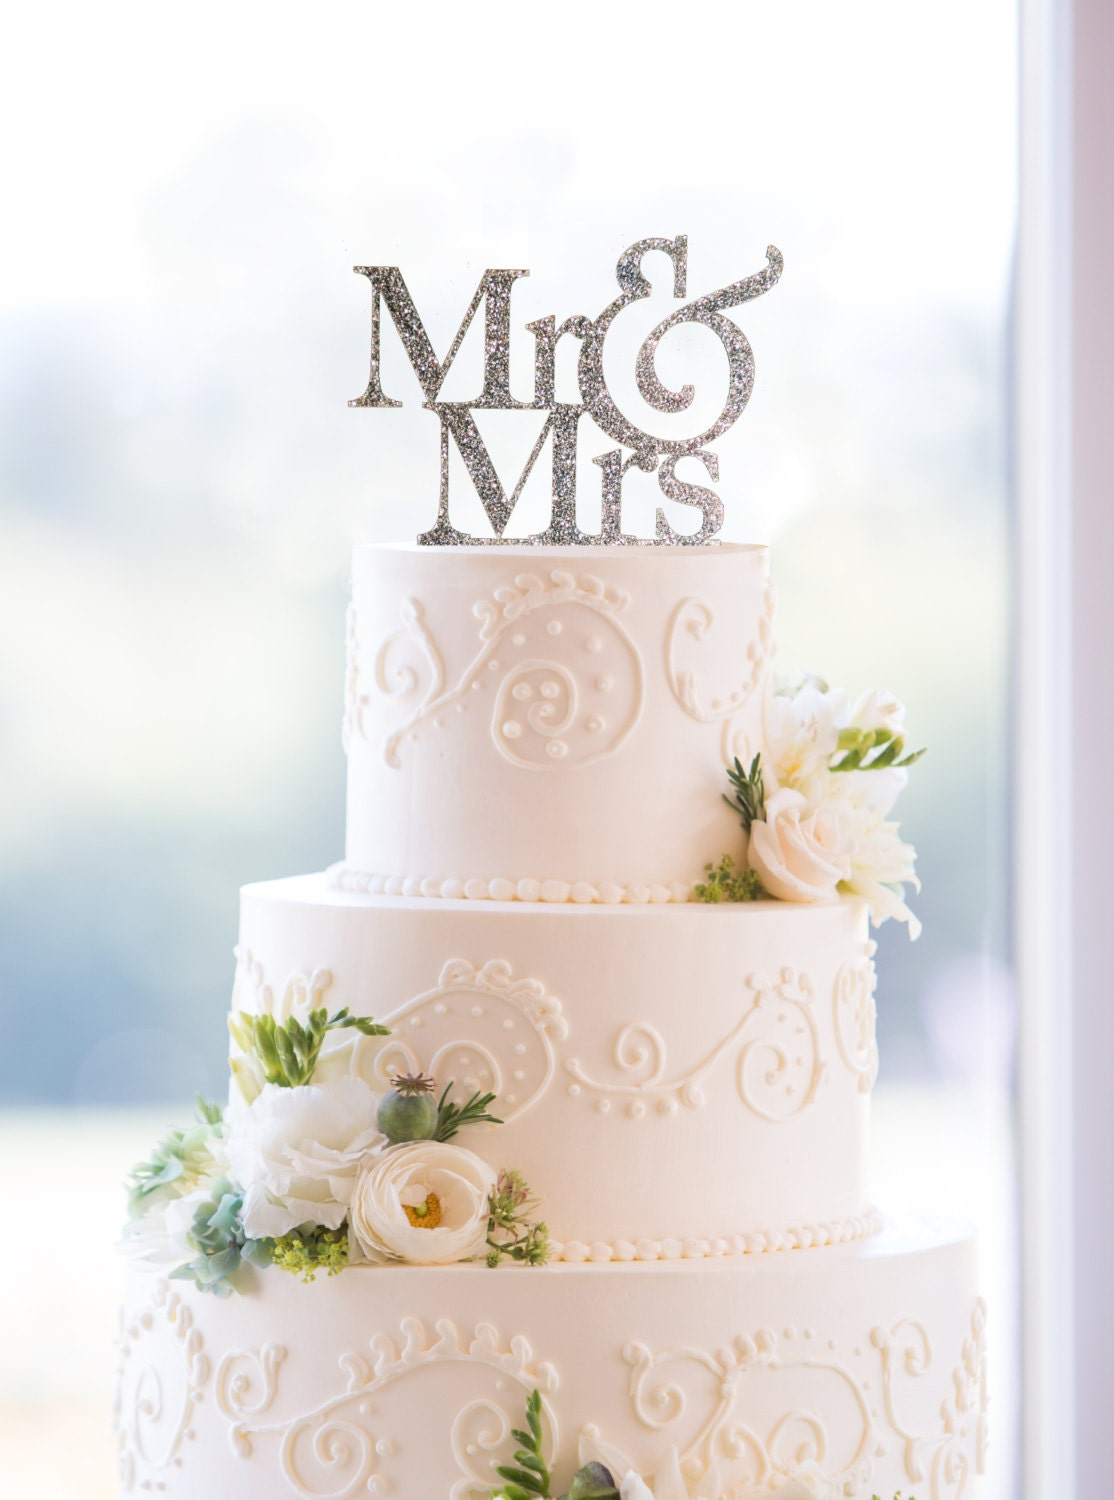 Glitter Mr and Mrs Wedding Cake Toppers in your by